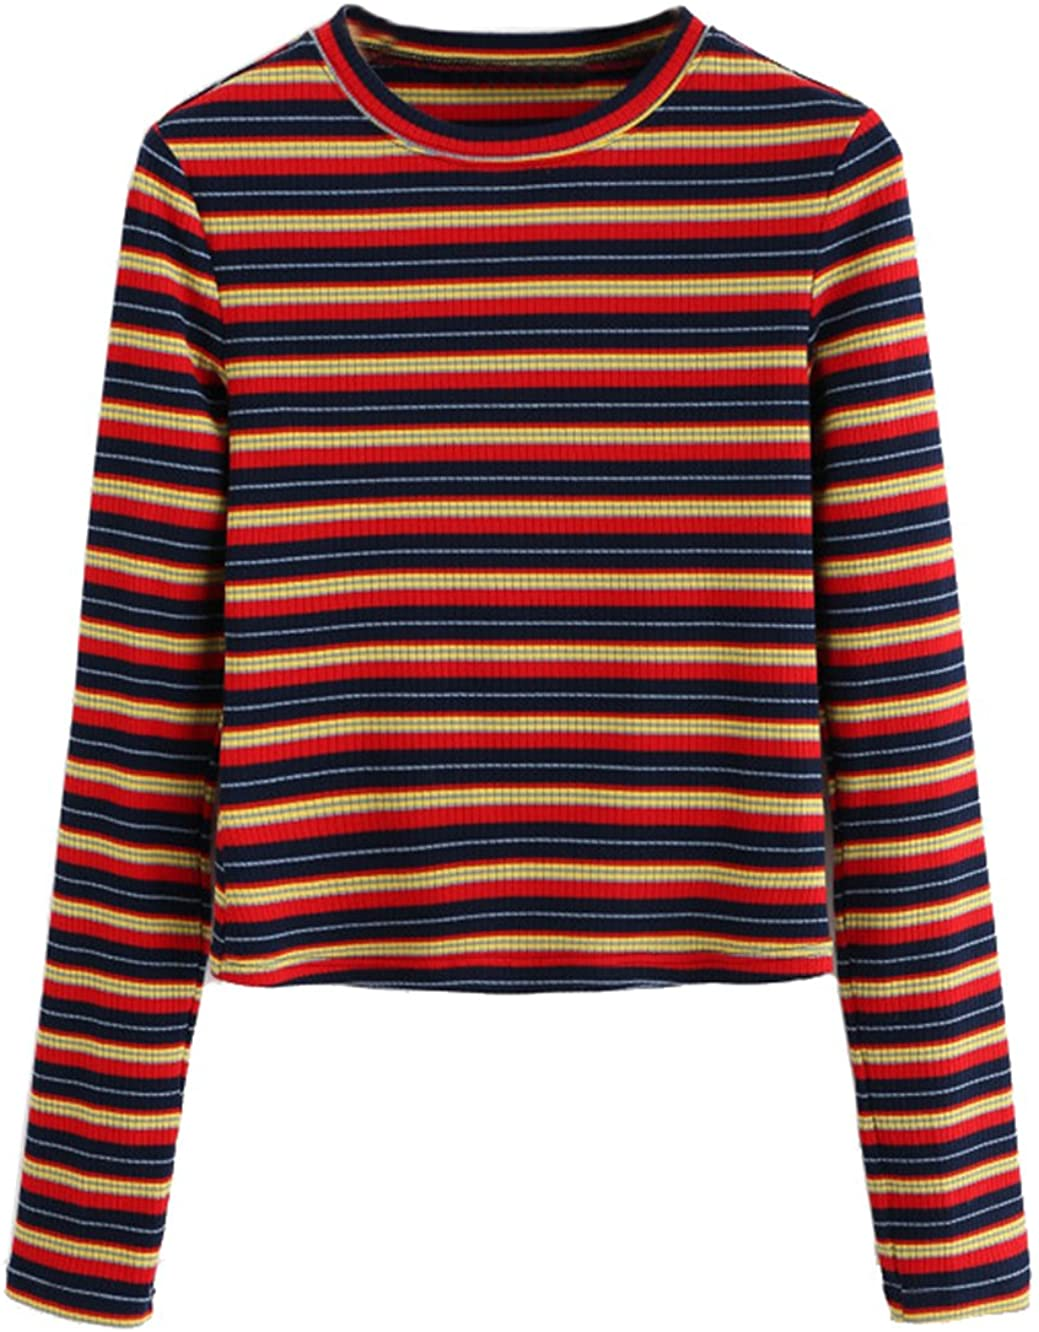 70s Clothes | Hippie Clothes & Outfits Milumia Womens Casual Striped Ribbed Tee Knit Basic Crop Top $19.99 AT vintagedancer.com